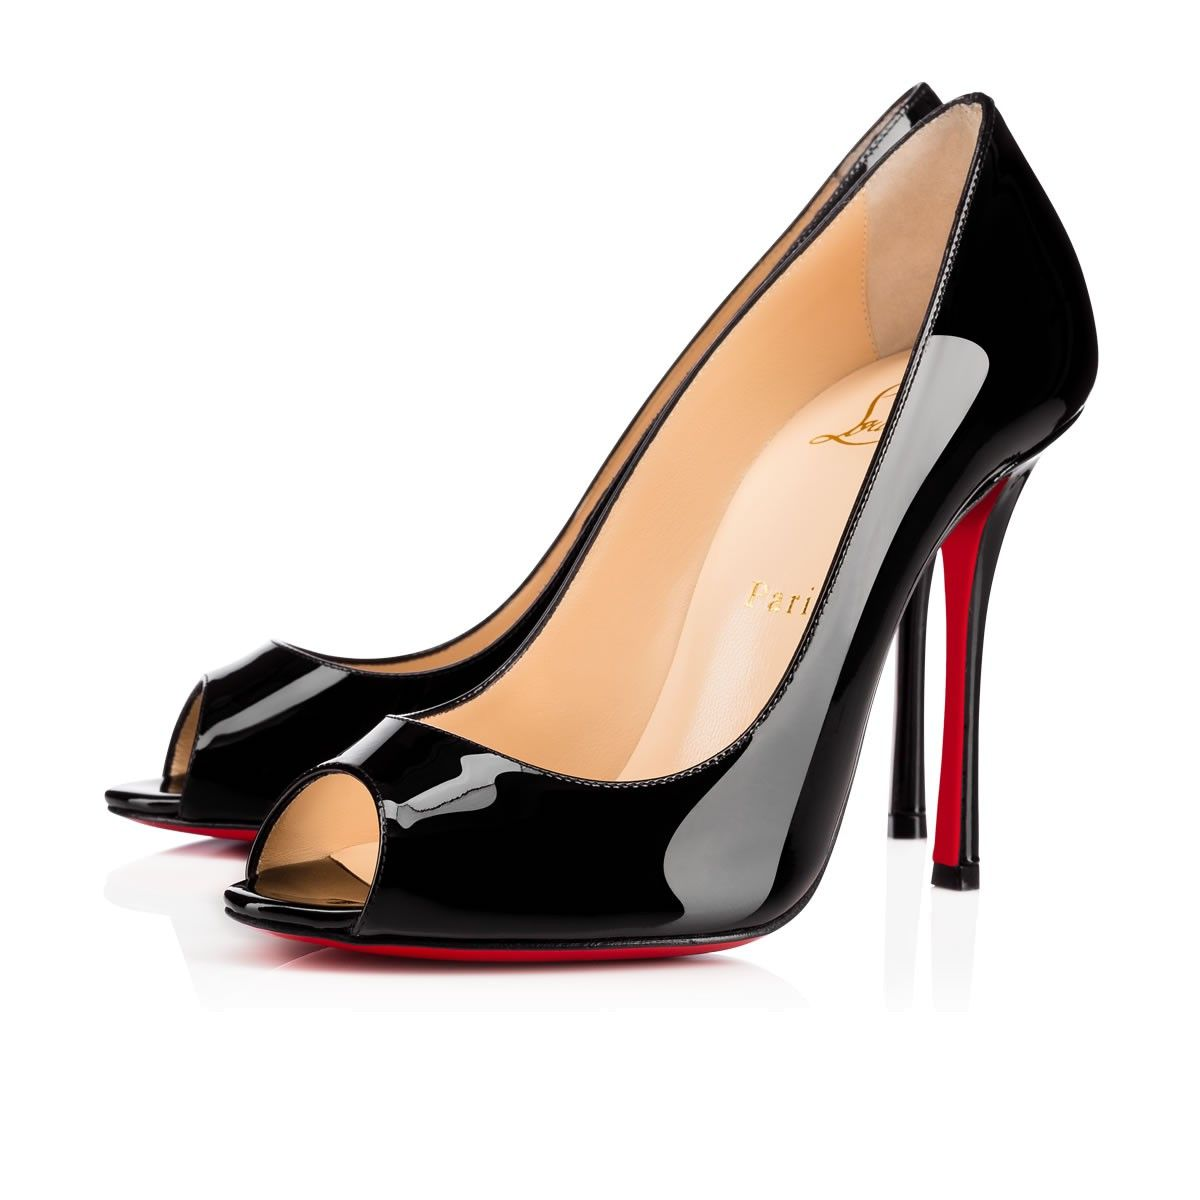 hot sale online dd0d6 135cf CHRISTIAN LOUBOUTIN Yootish 100 Black Patent Leather - Women ...